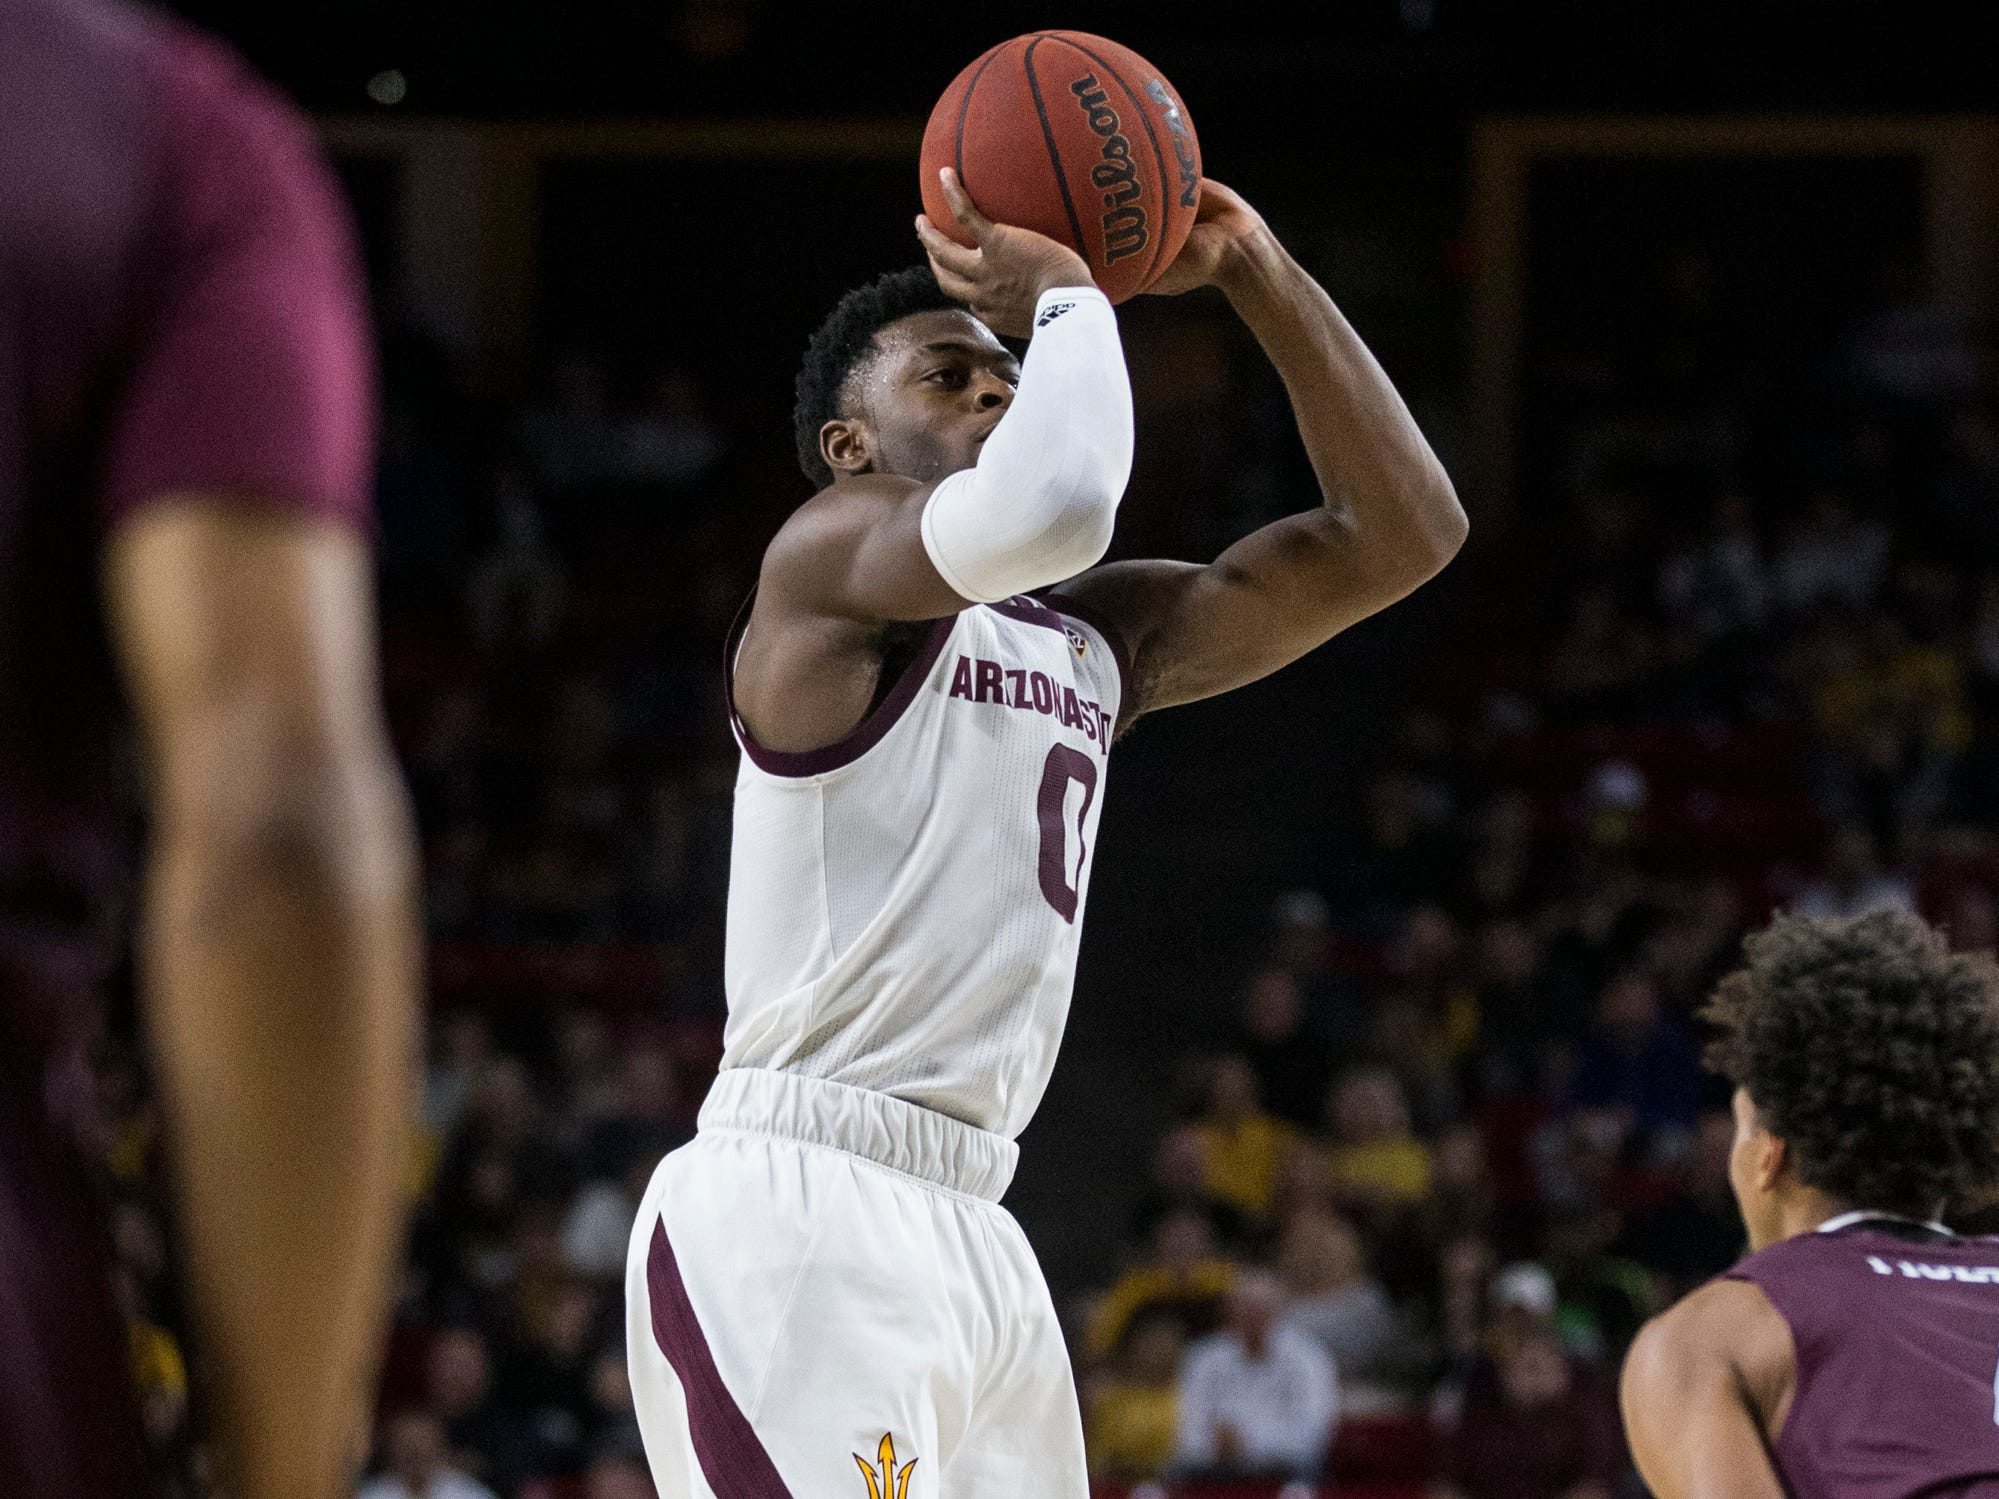 Arizona State's Luguentz Dort attempts a shot against Texas Southern in the first half on Saturday, Dec. 1, 2018, at Wells Fargo Arena in Tempe, Ariz.